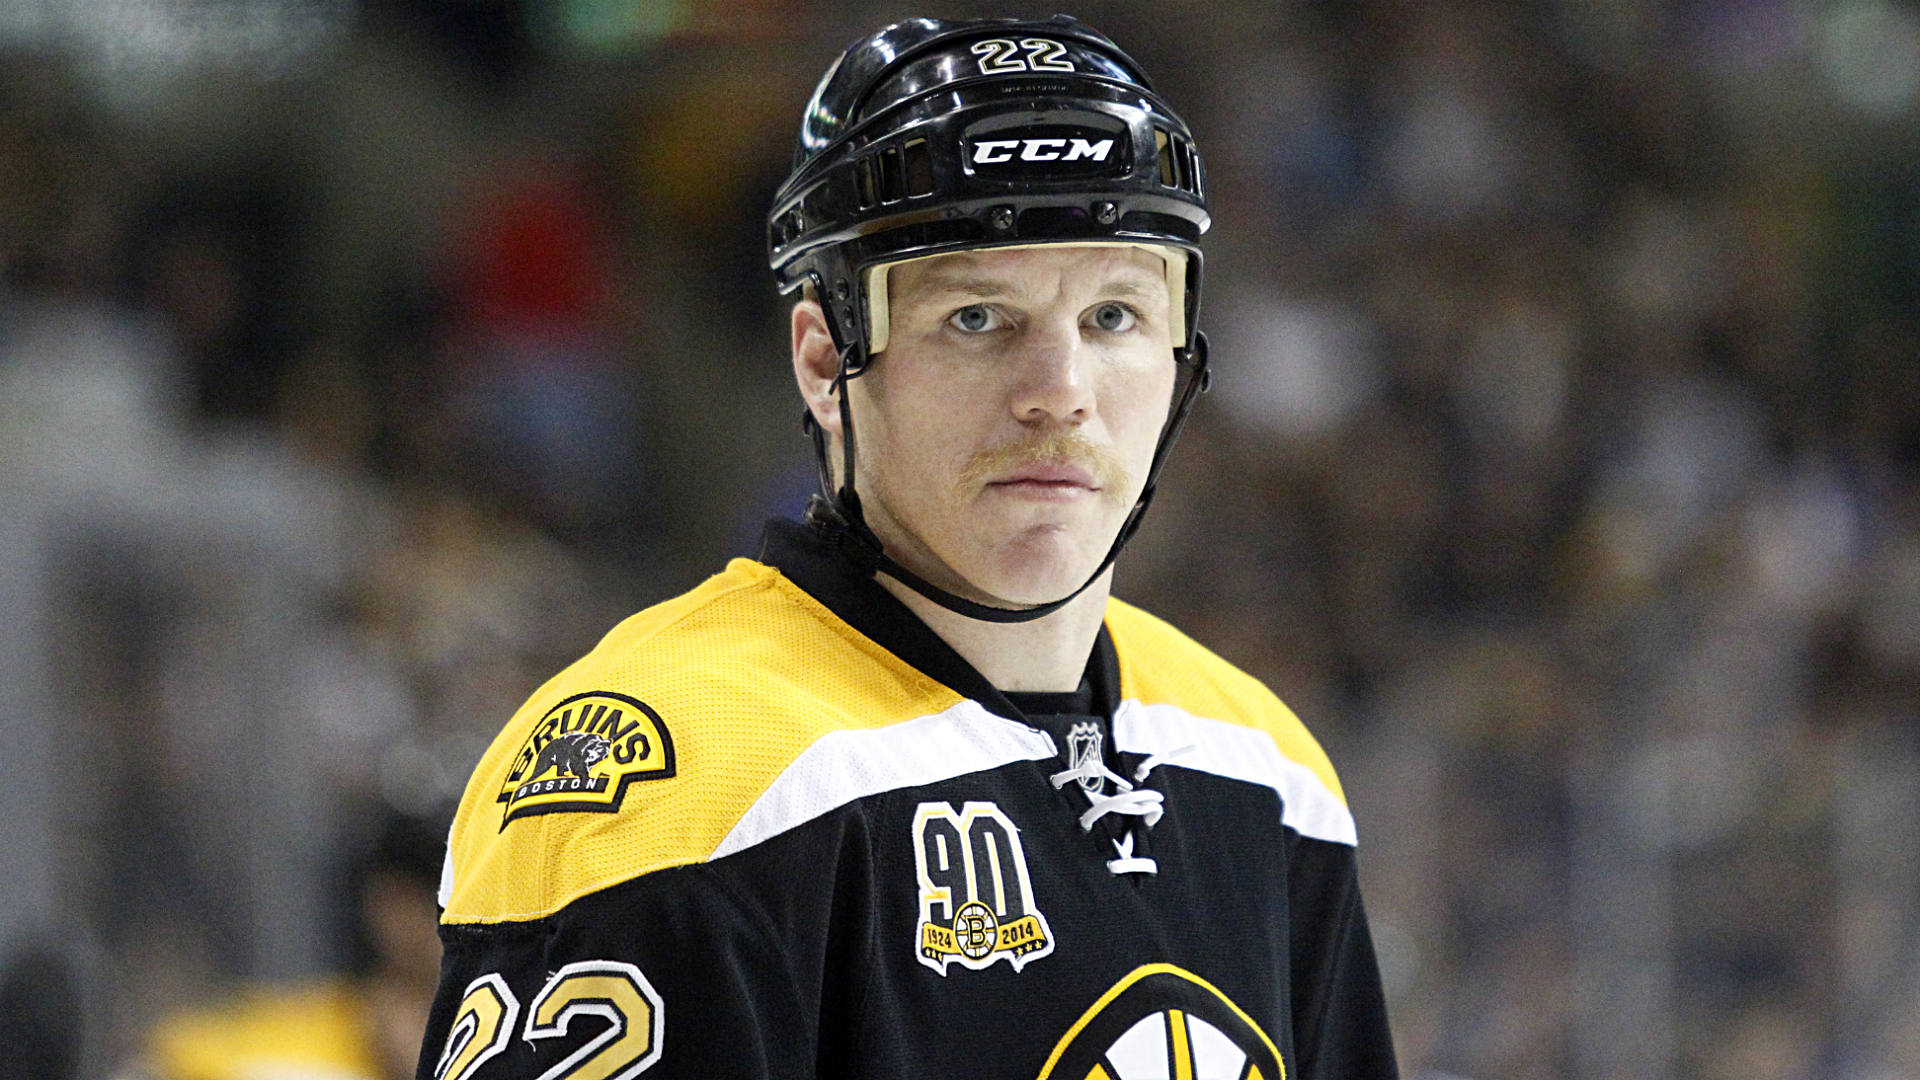 Shawn-Thornton-FTR-121013-AP